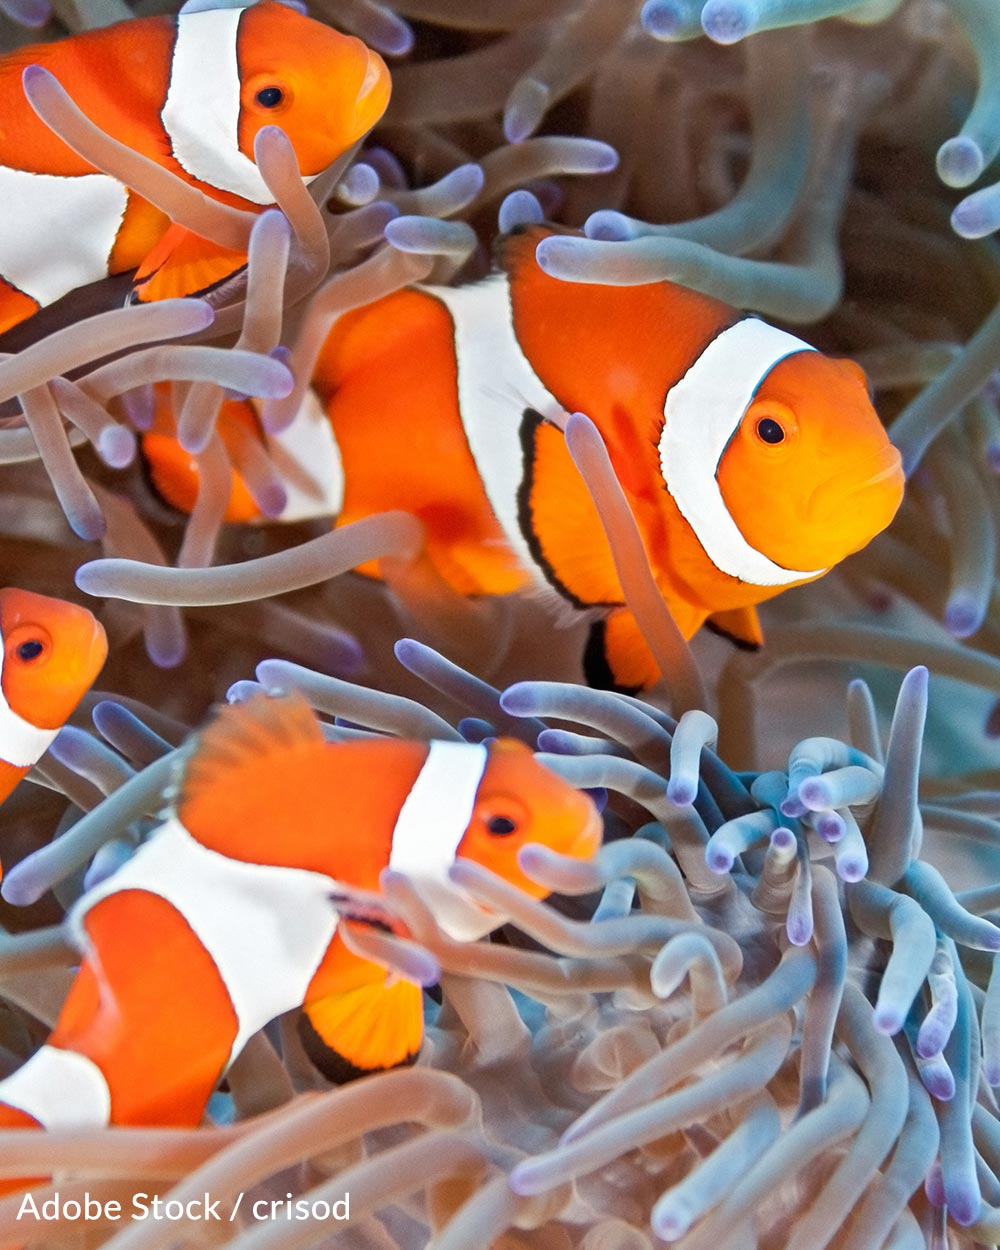 The clownfish is not currently considered endangered by the US Fish and Wildlife Service.